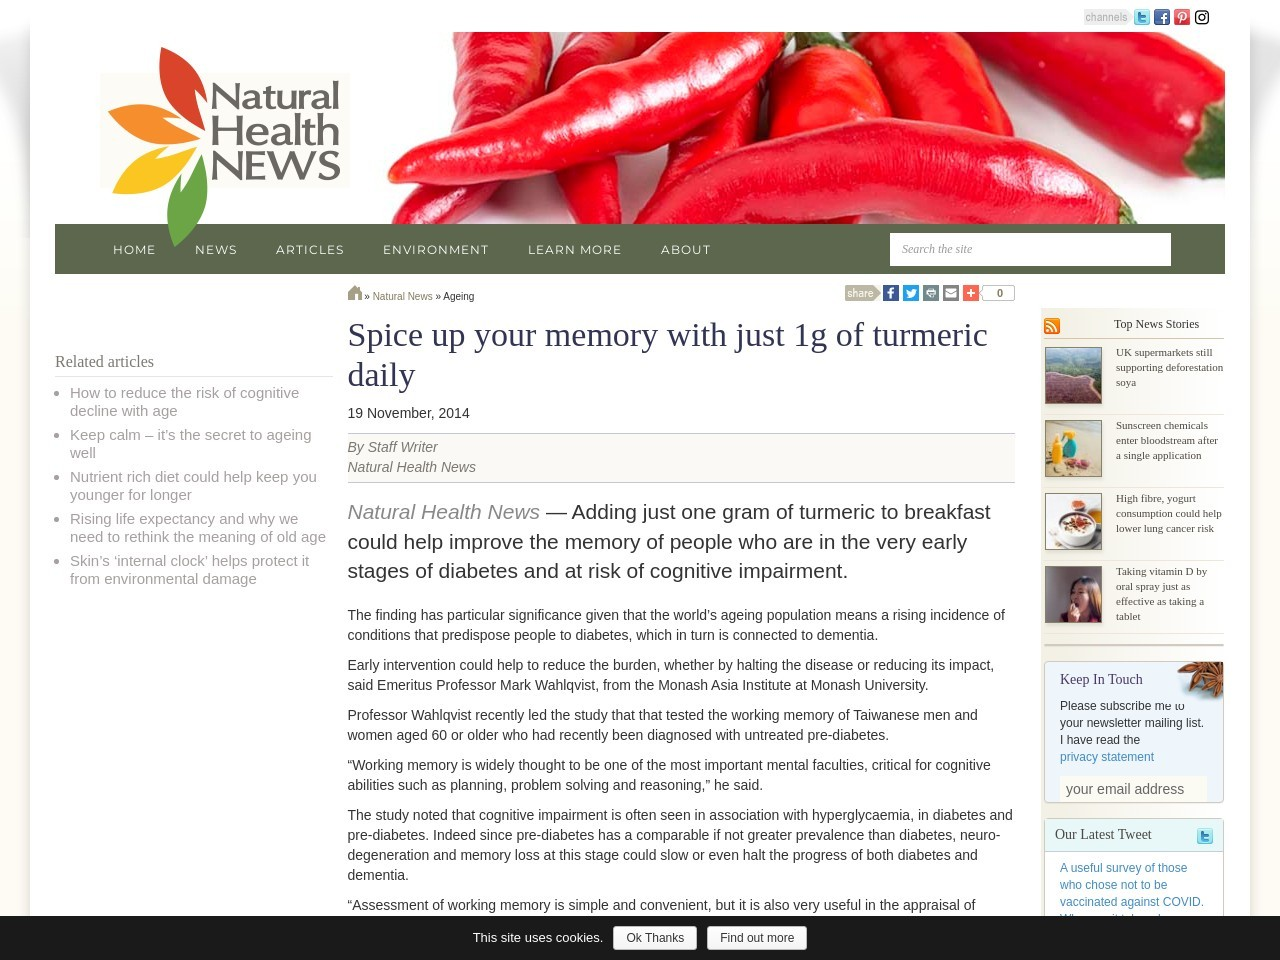 Spice up your memory with just 1g of turmeric daily